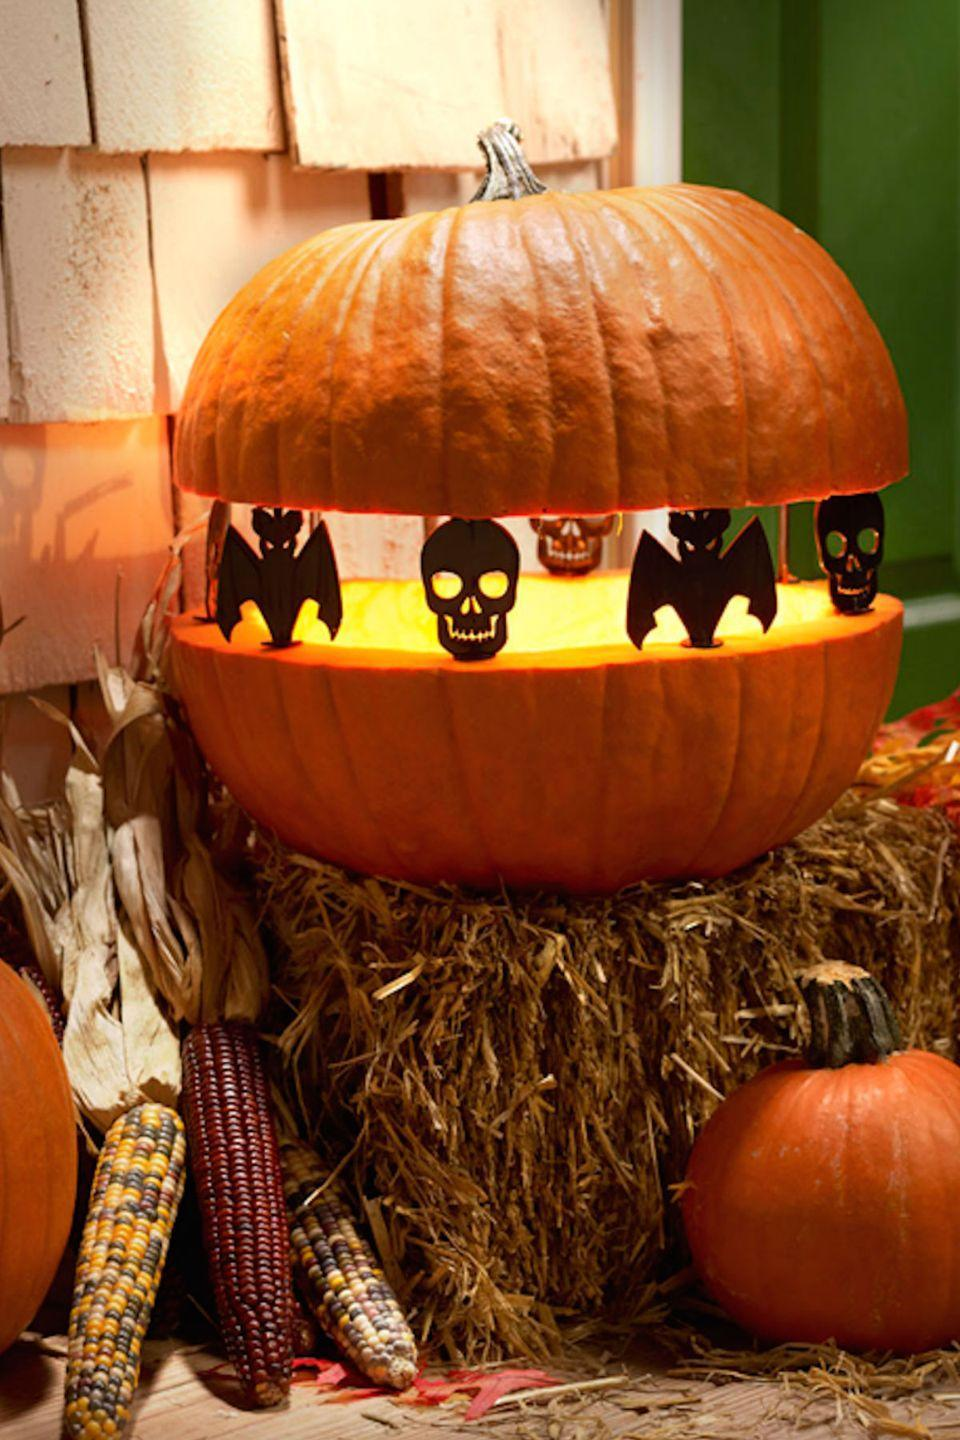 "<p>Make trick-or-treaters do a double take with this creepy pumpkin design.</p><p><strong>Get the tutorial at <a href=""https://plaidonline.com/blog/october-2014/create-some-spook-tacular-pumpkins"" rel=""nofollow noopener"" target=""_blank"" data-ylk=""slk:Plaid"" class=""link rapid-noclick-resp"">Plaid</a>. </strong></p>"